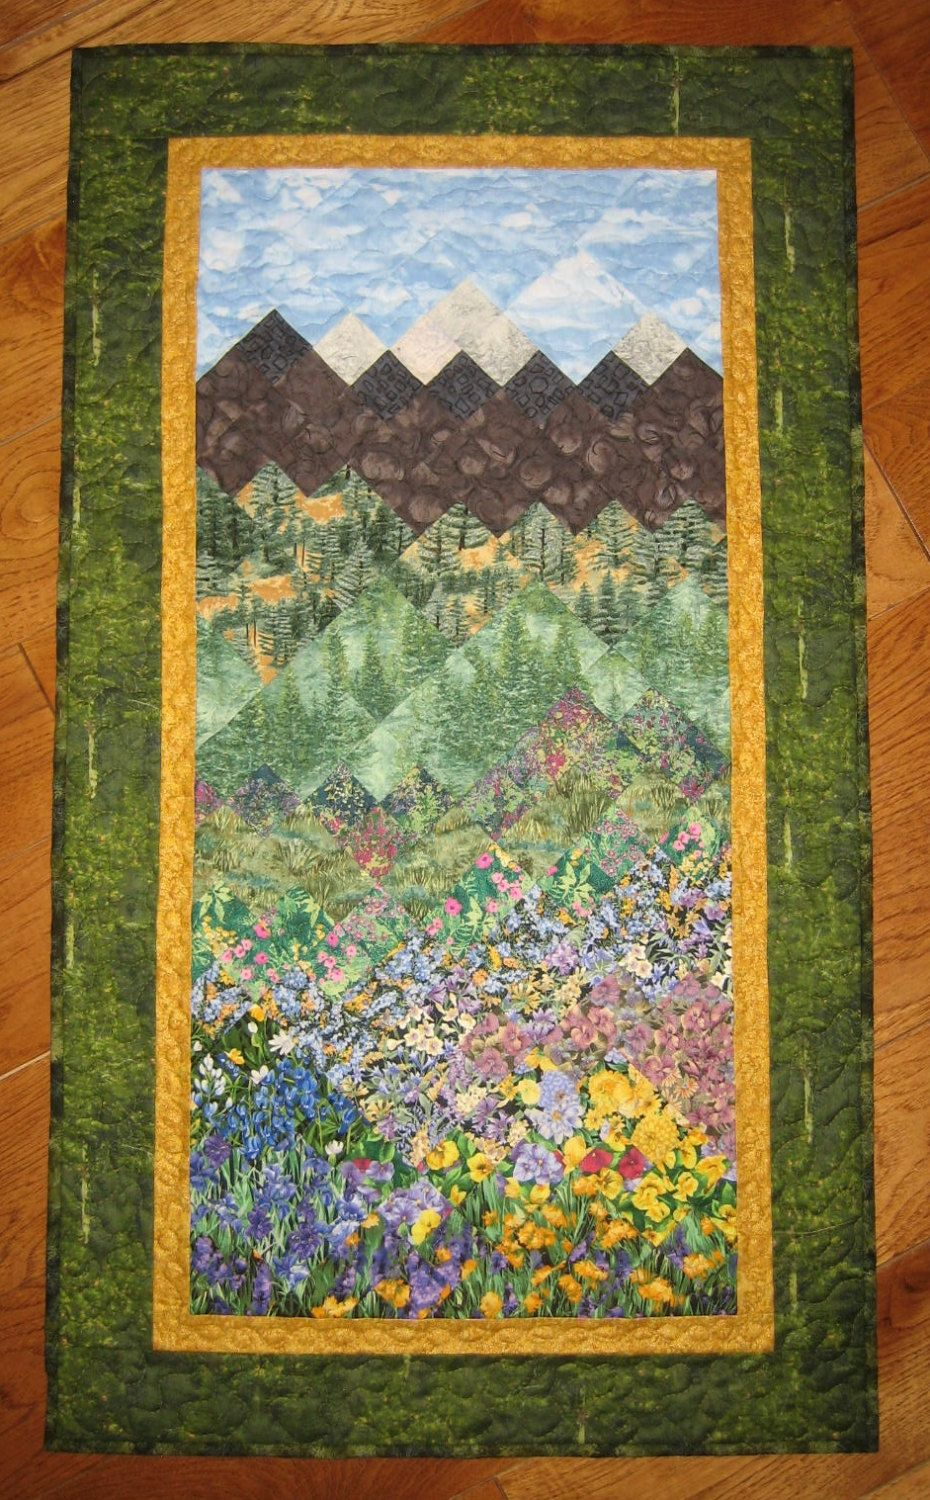 Mountain Trees and Flowers Art Quilt Fabric Wallhanging Handmade ... : landscape quilting fabric - Adamdwight.com